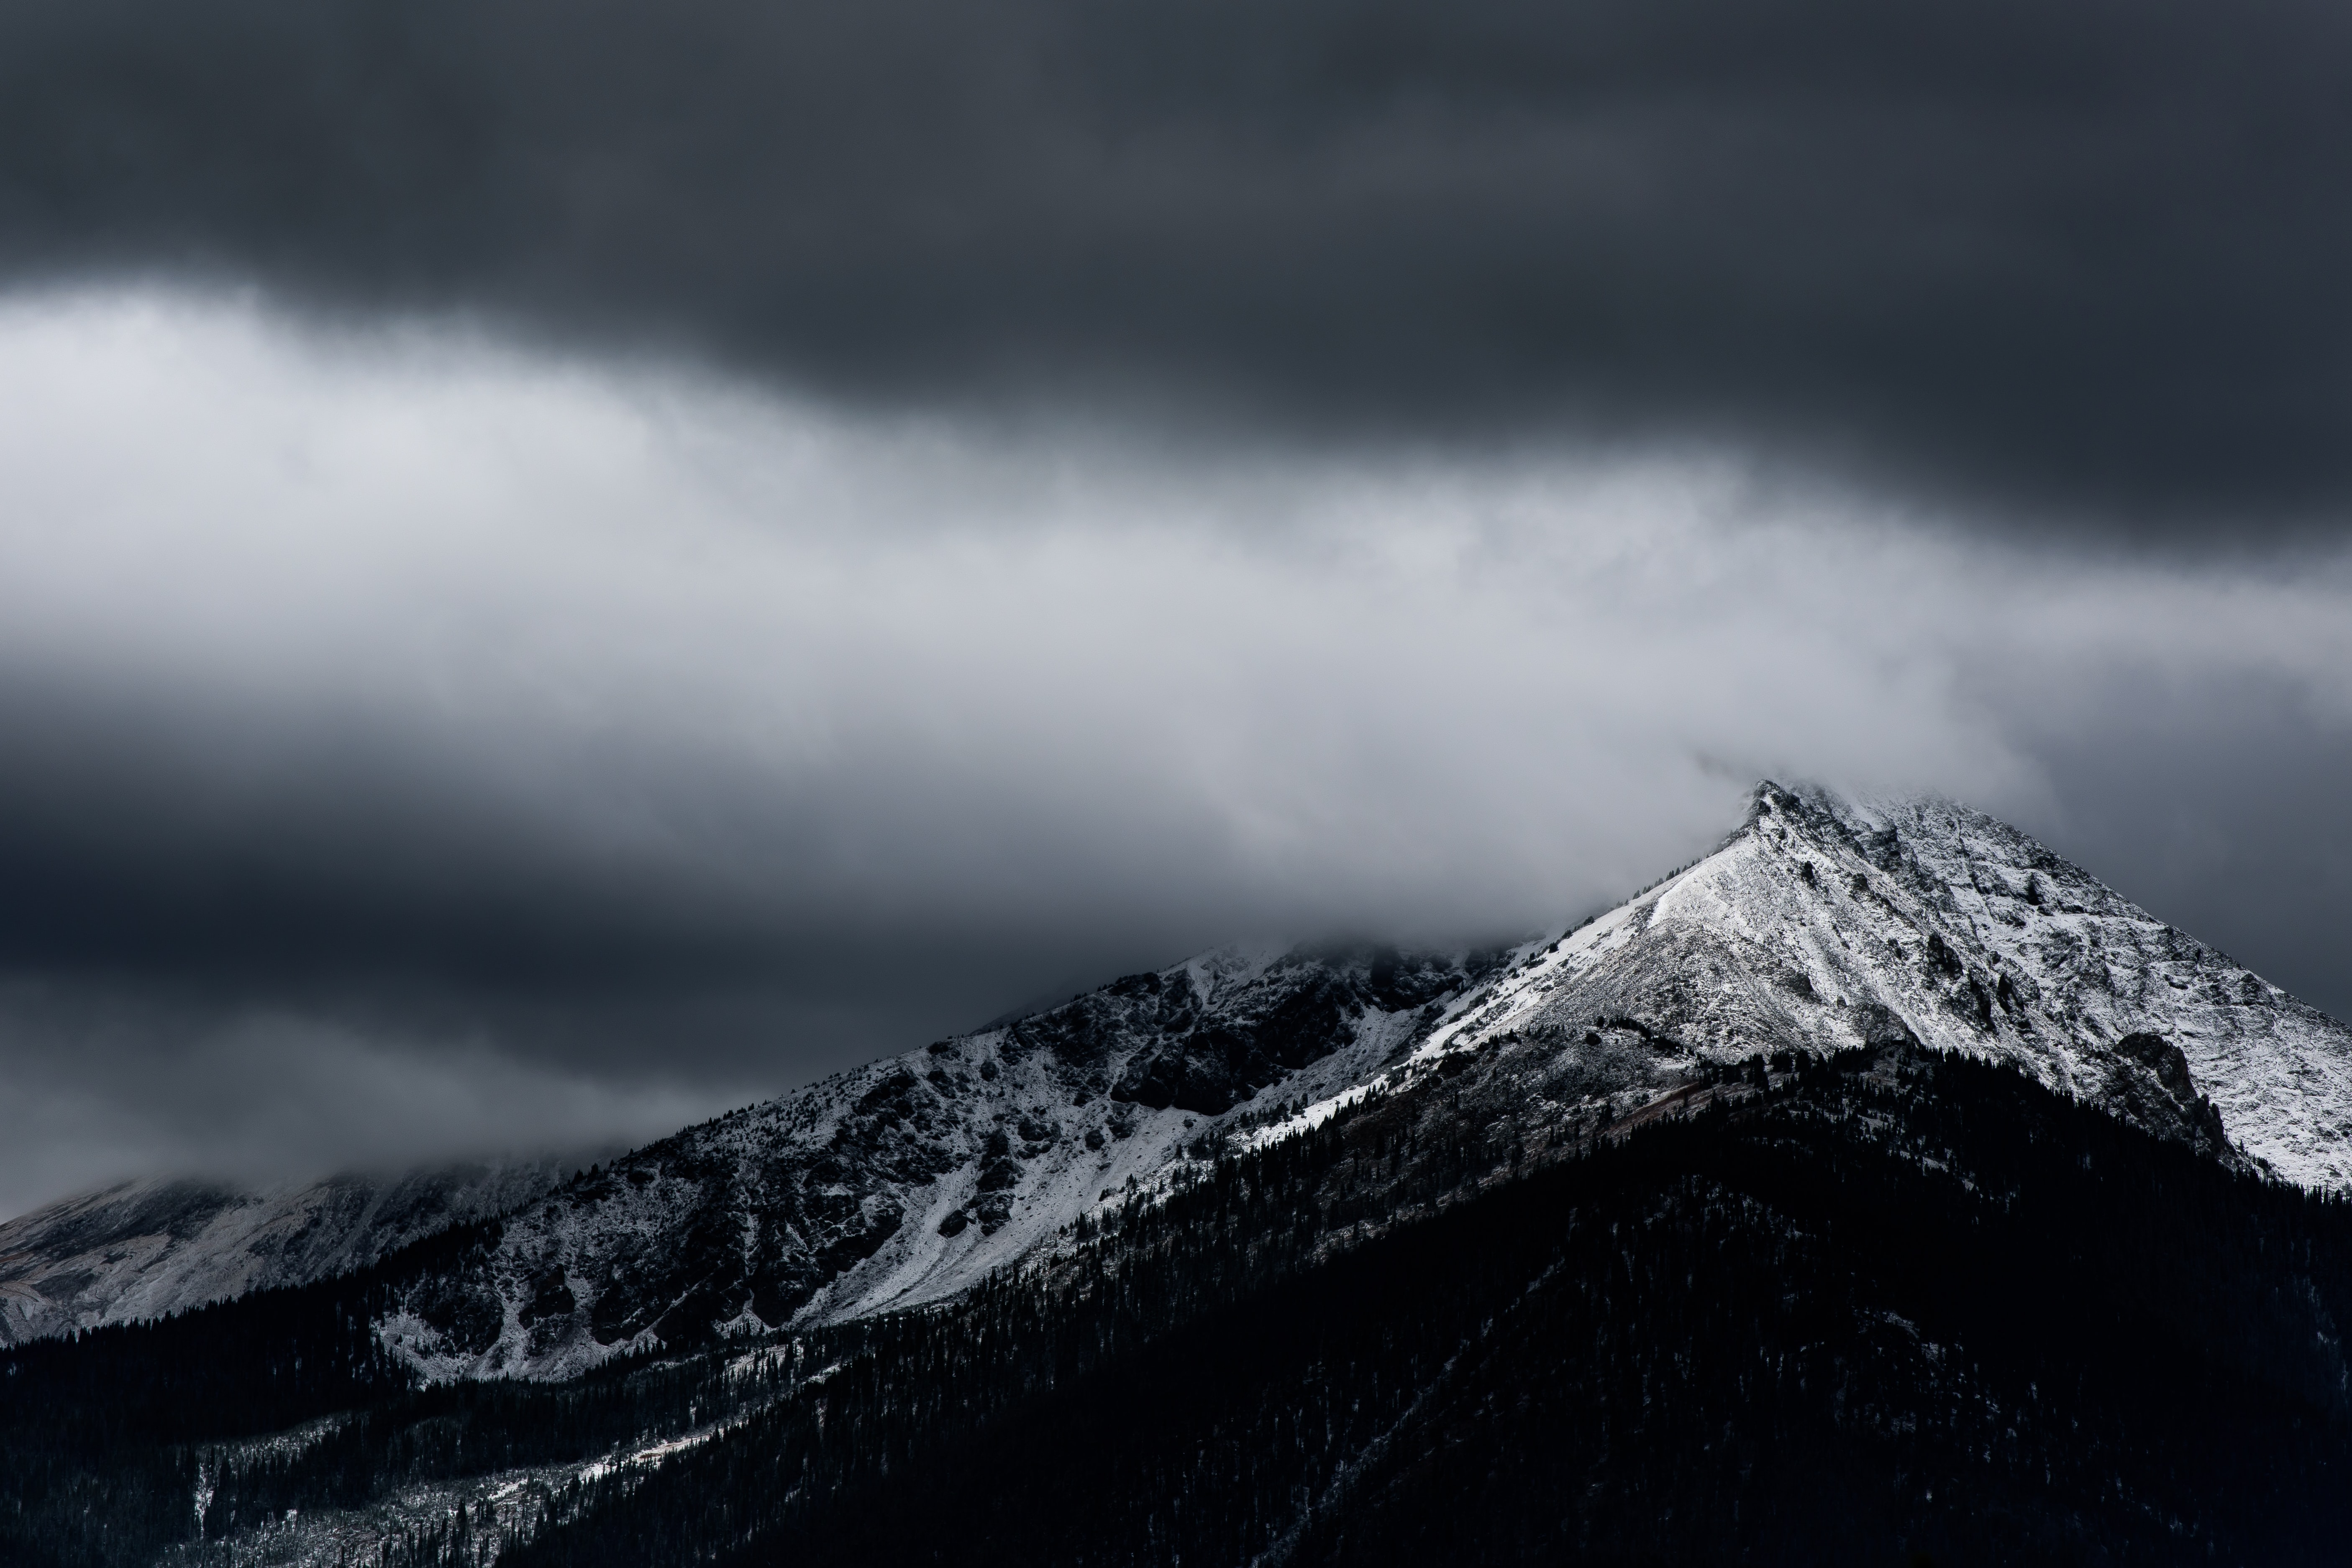 snow mountain with clouds